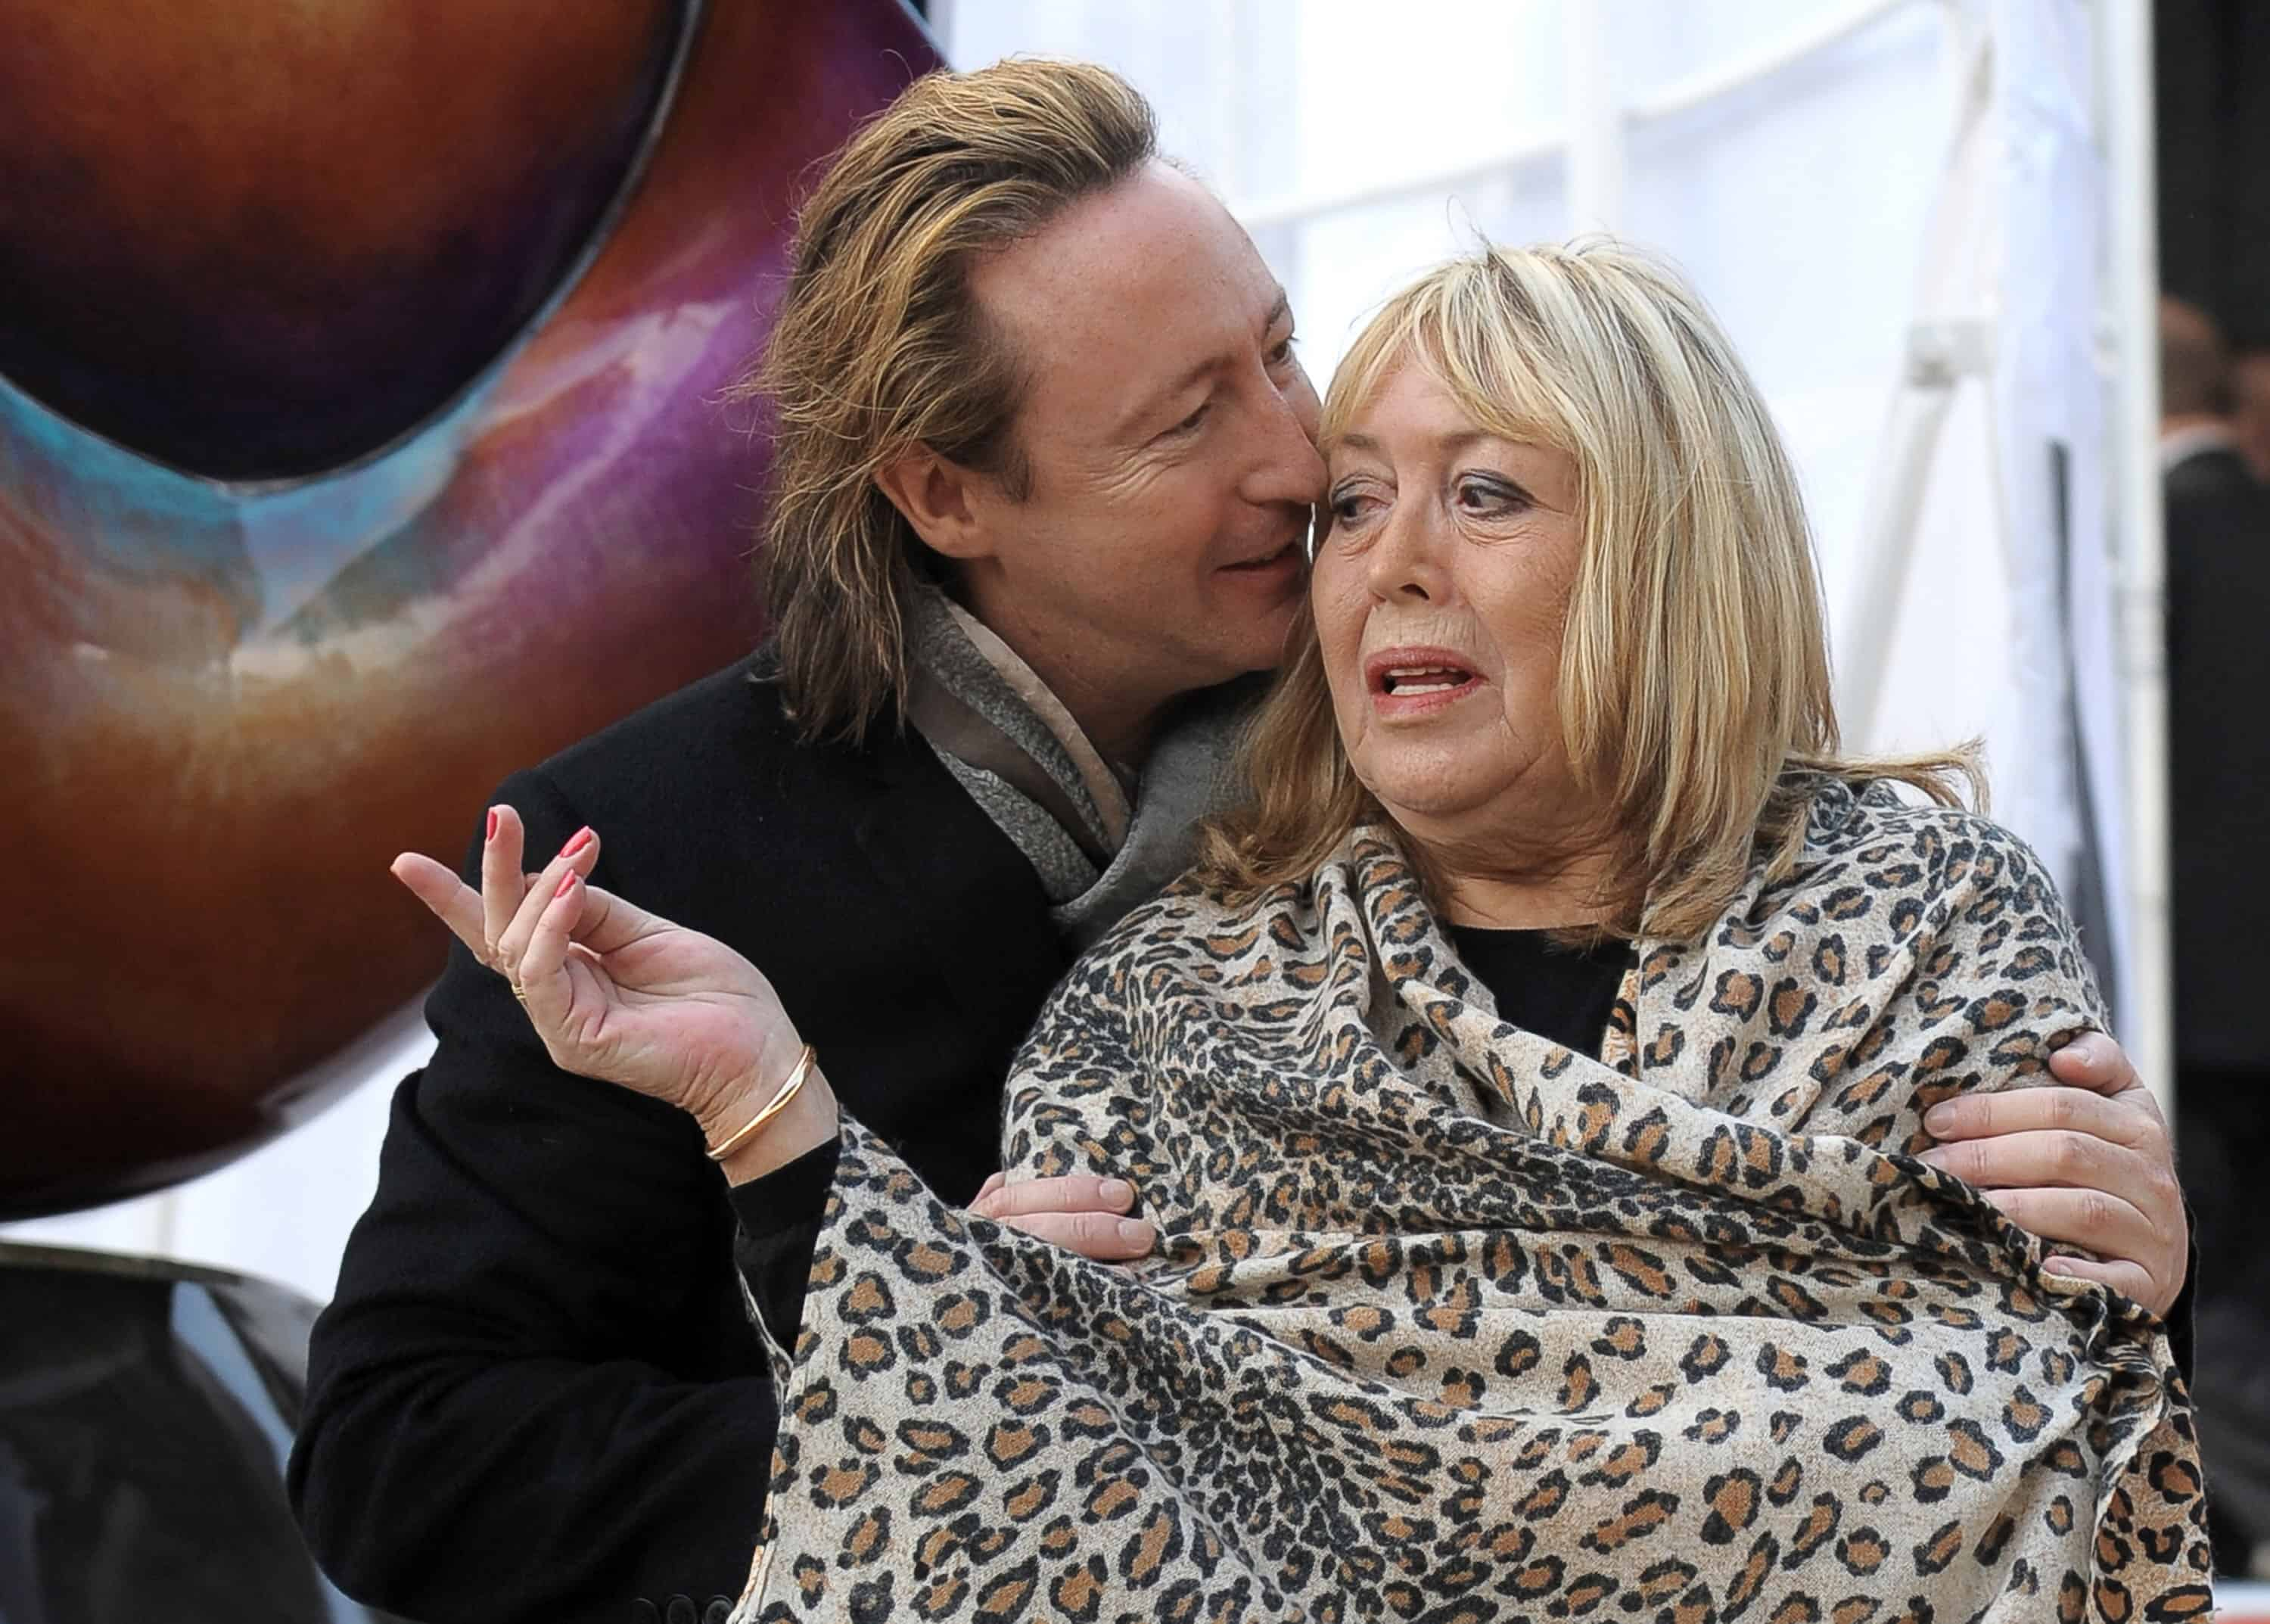 A 2010 photo shows Cynthia Lennon and son Julian.